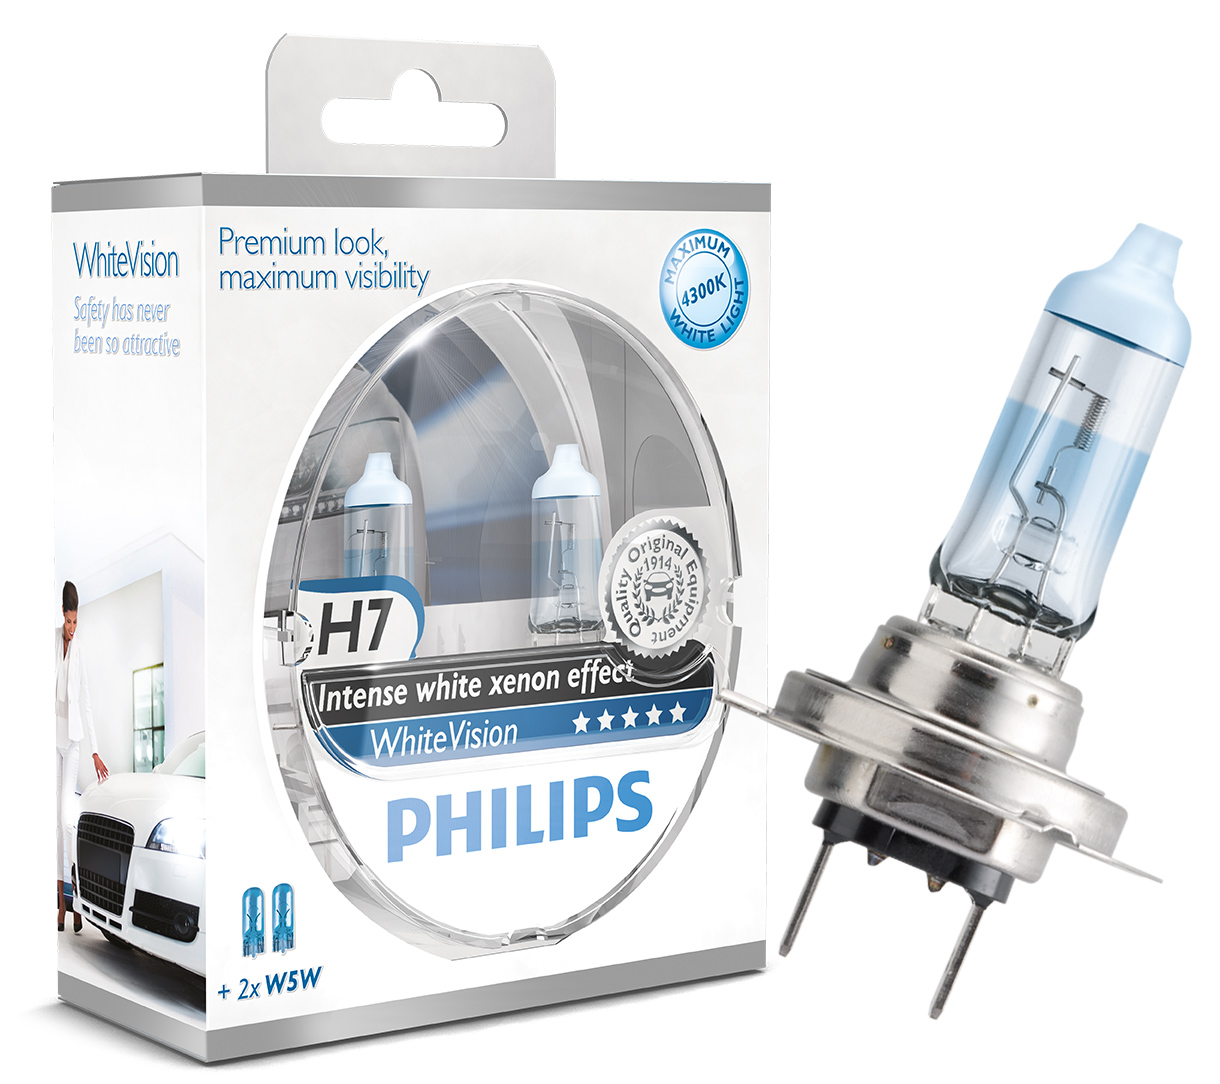 What S The Difference Between Philips Whitevision And